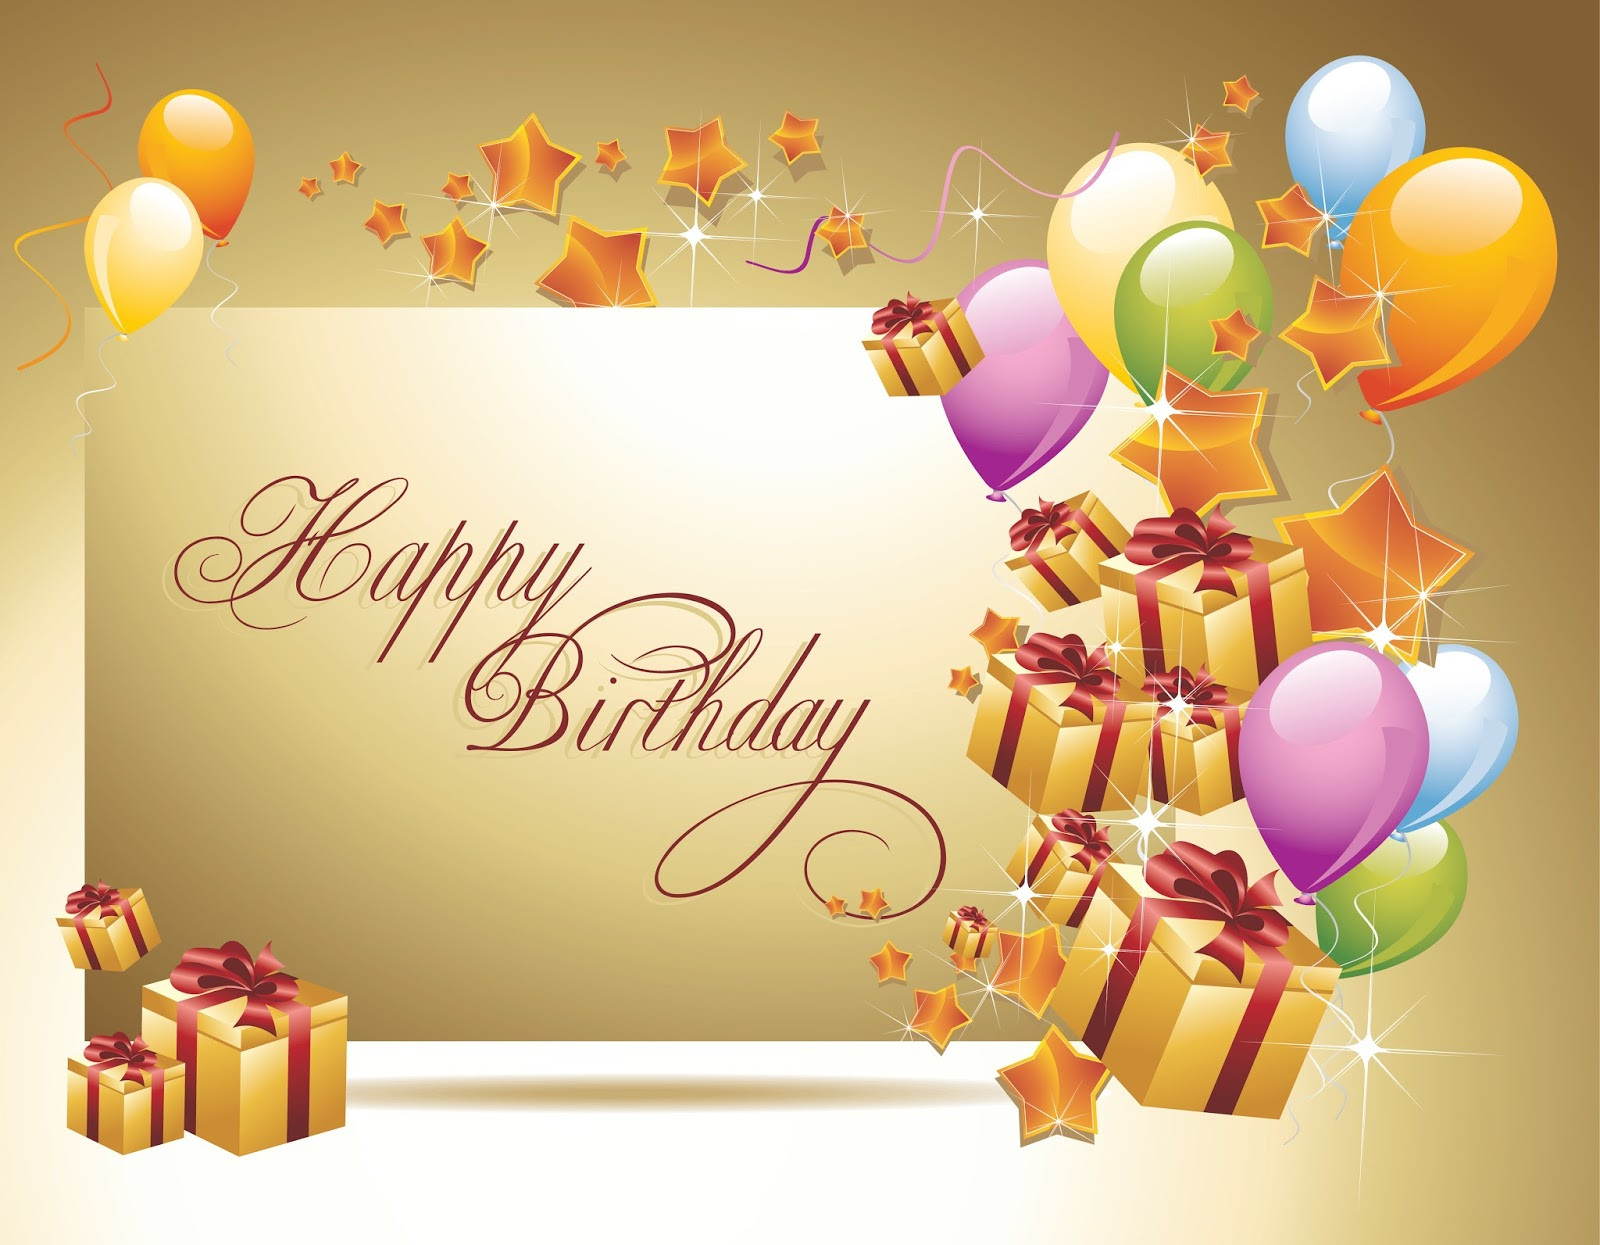 Best ideas about Happy Birthday Wishes For Her . Save or Pin 50 Birthday Wishes and Messages with Quotes Good Now.